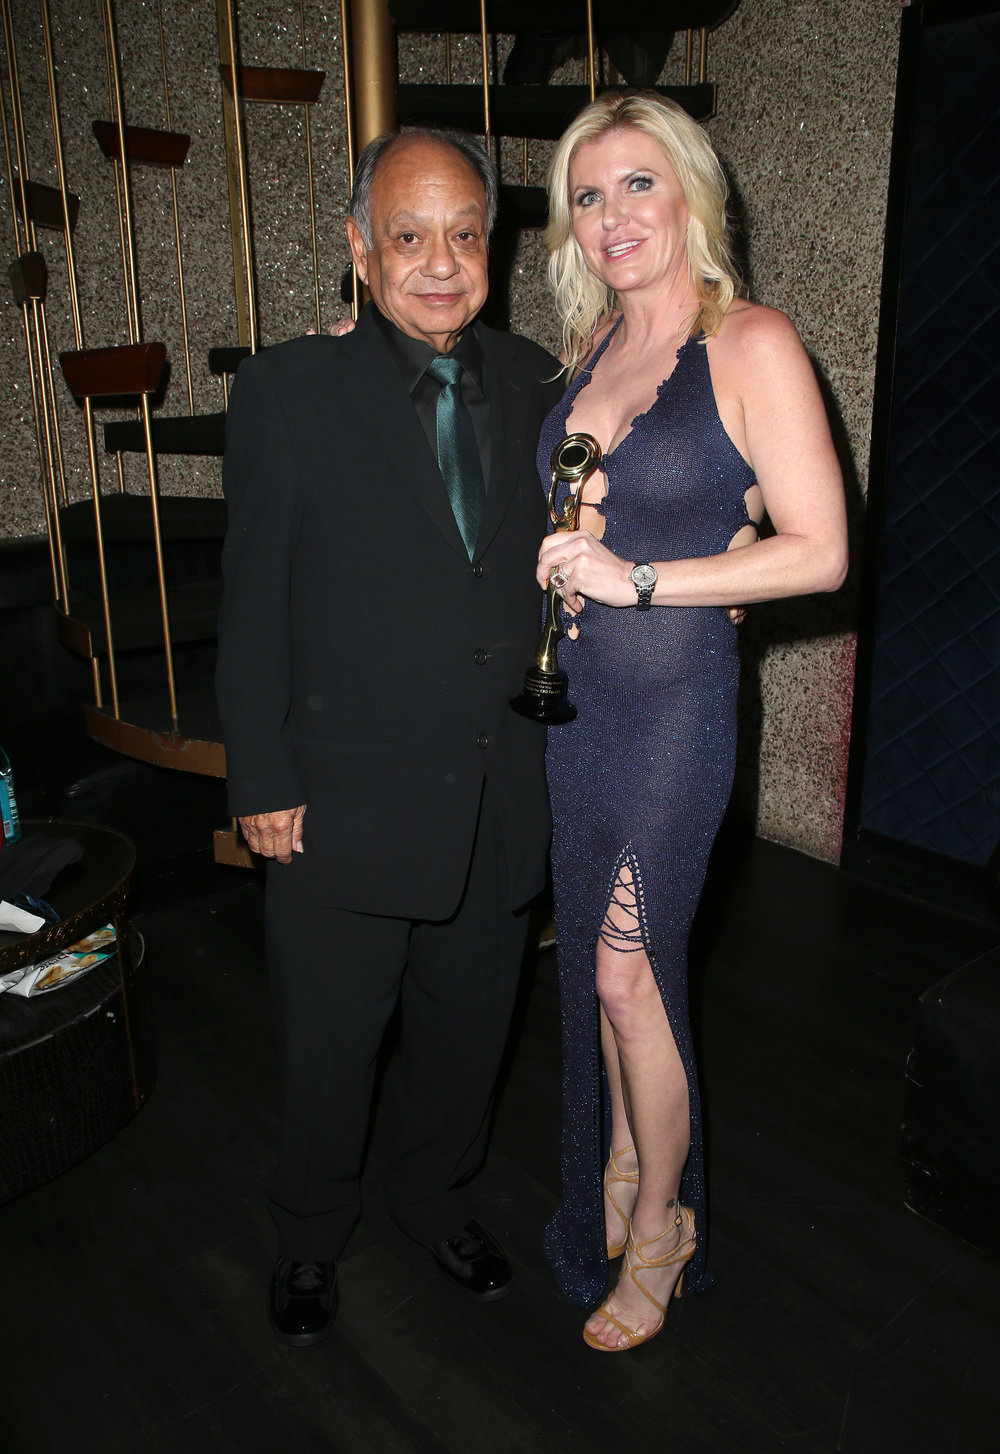 Cheech Marin and Beth Stavola  | Feb 25, 2018, Hollywood Beauty Awards held at the Avalon